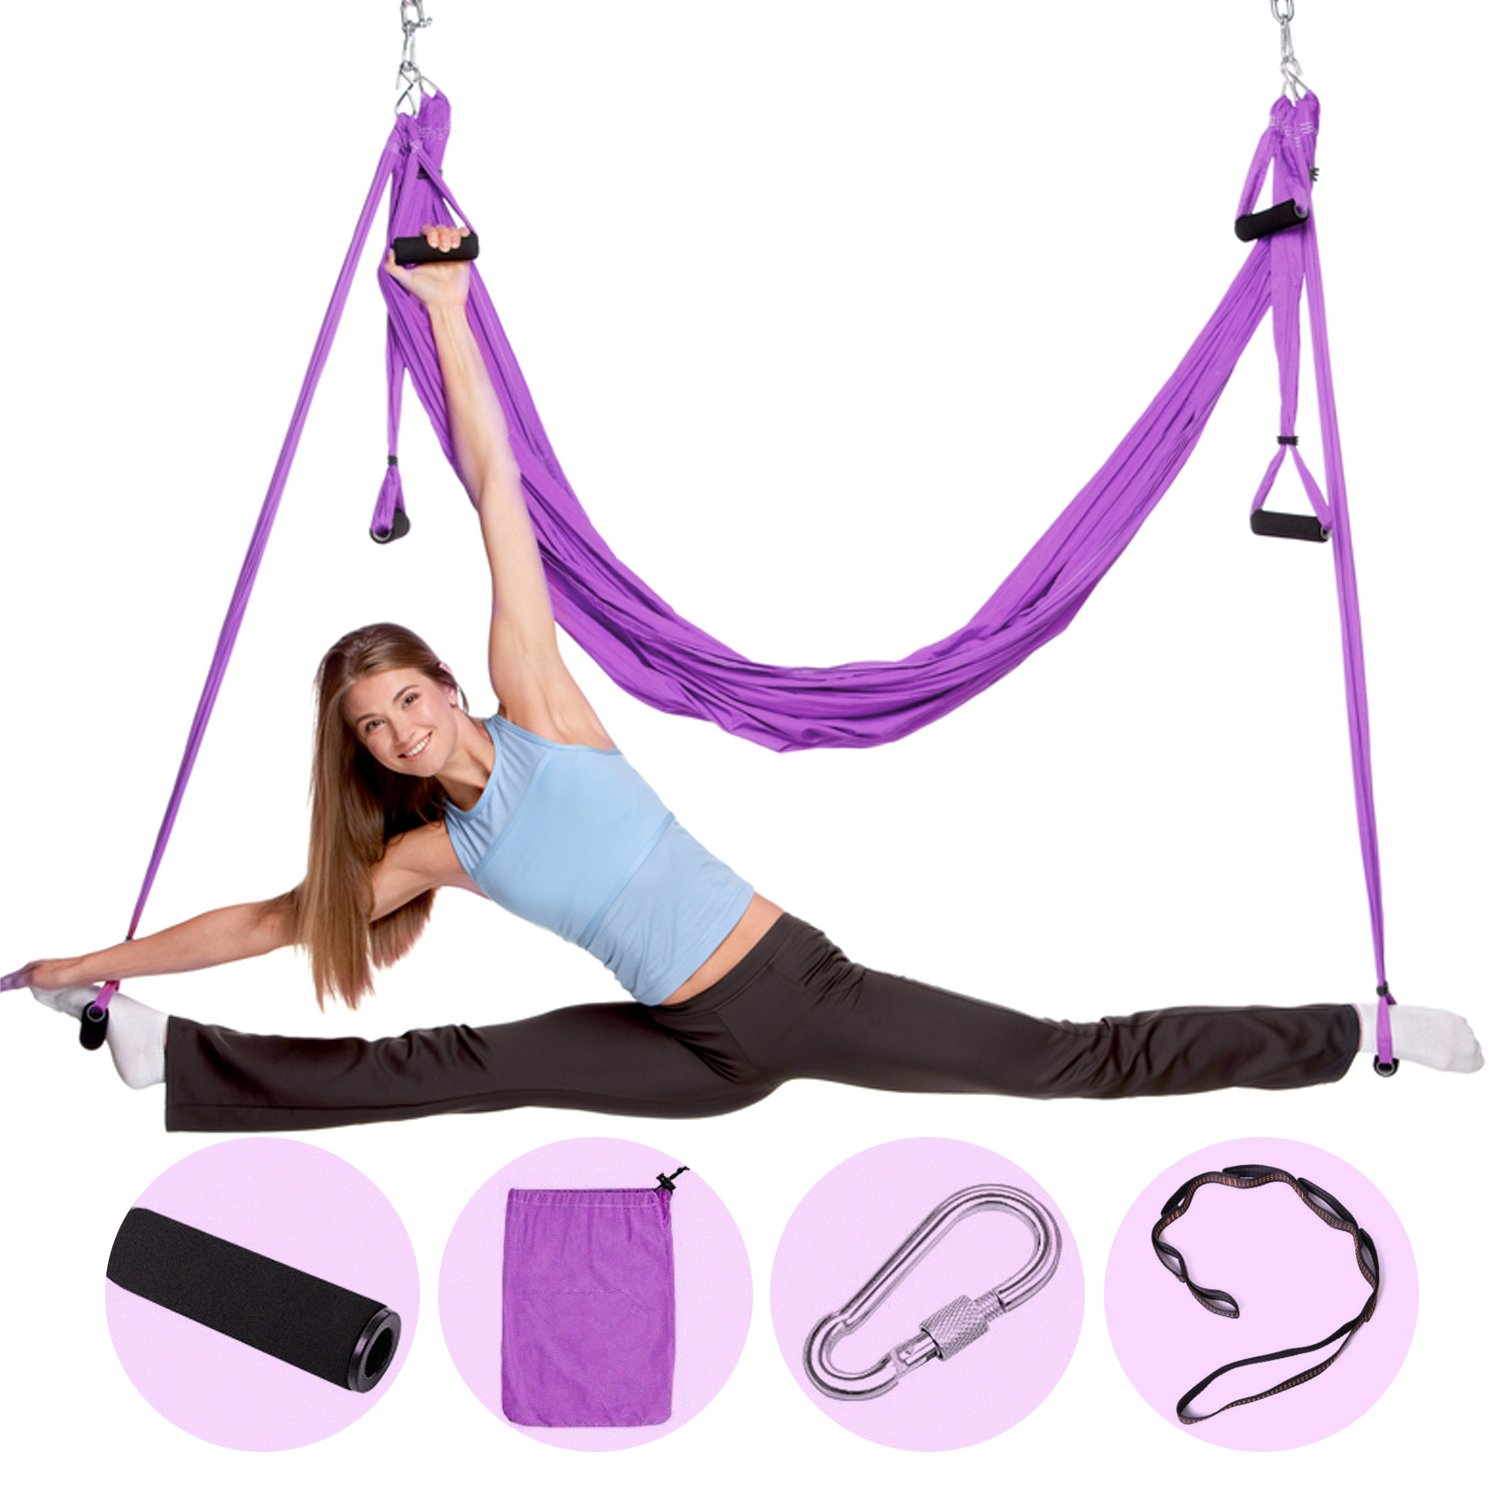 Nillygym Antigravity Yoga Swing for Yoga Inversion Exercise - Aerial Pro Yoga Hammock Set - Trapeze for Yoga - Sling for Yoga - Extension Straps - Ultra Strong